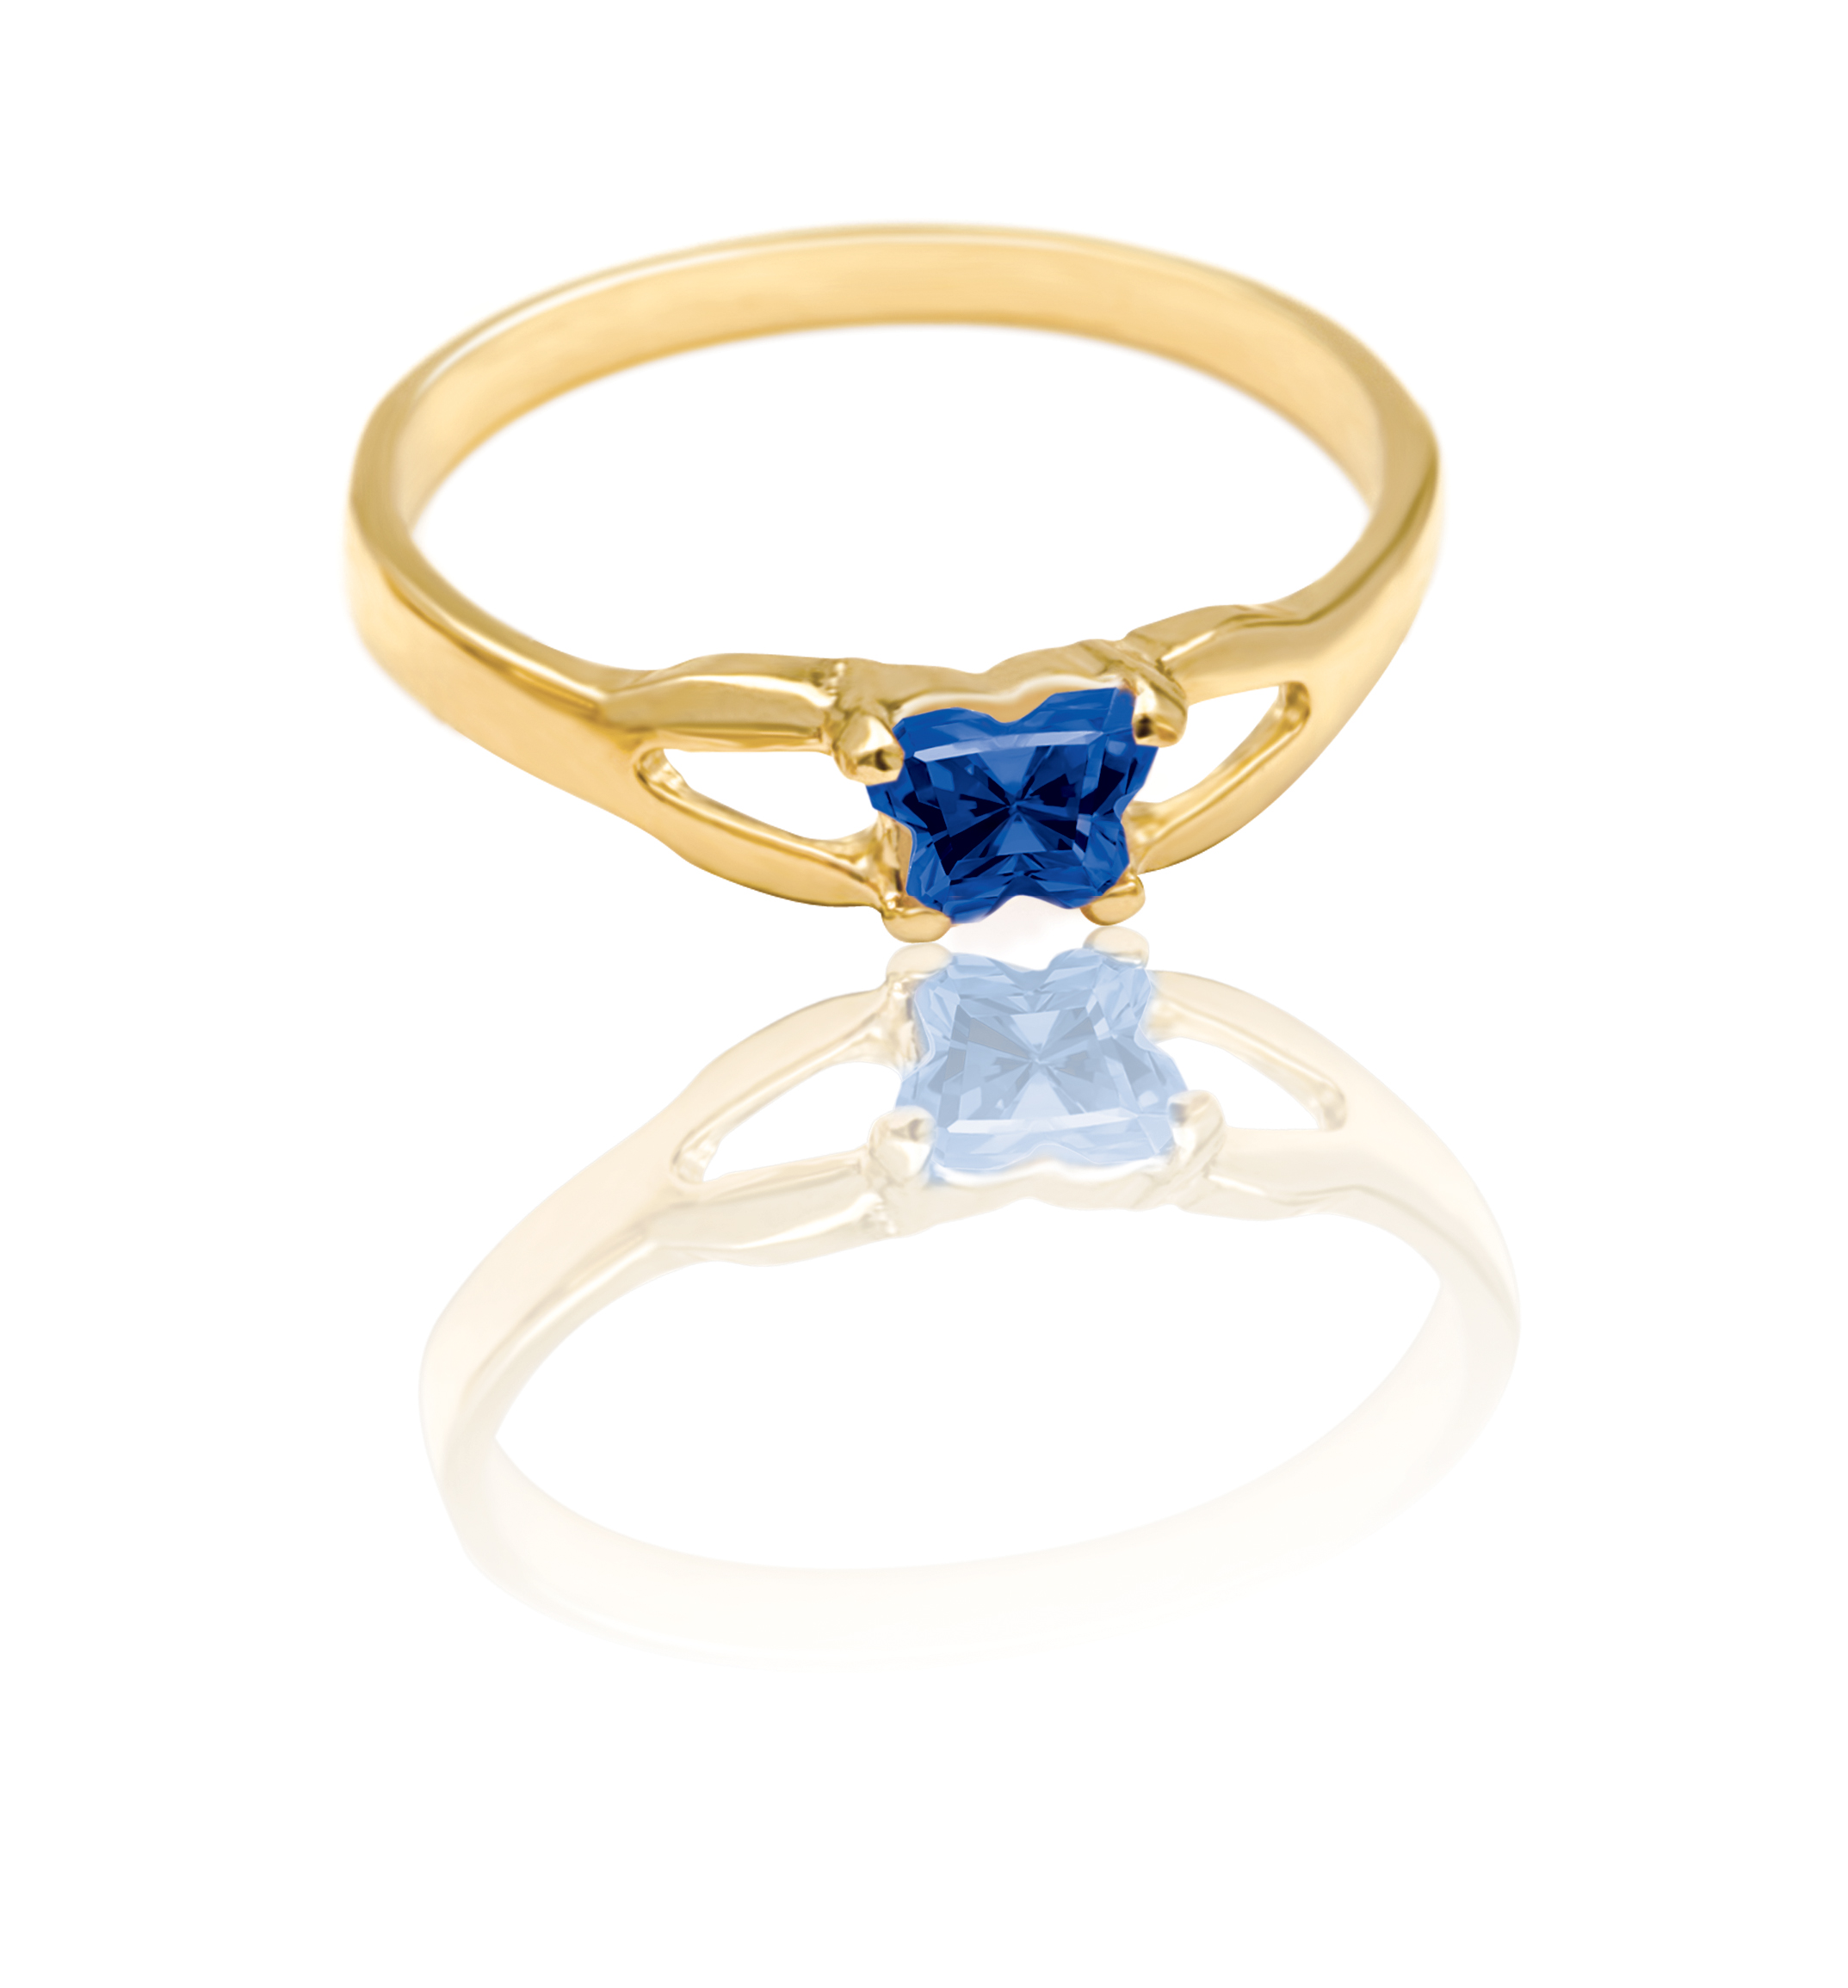 ring for child - 10K yellow Gold & Dark blue cubic zirconia (month of September)*